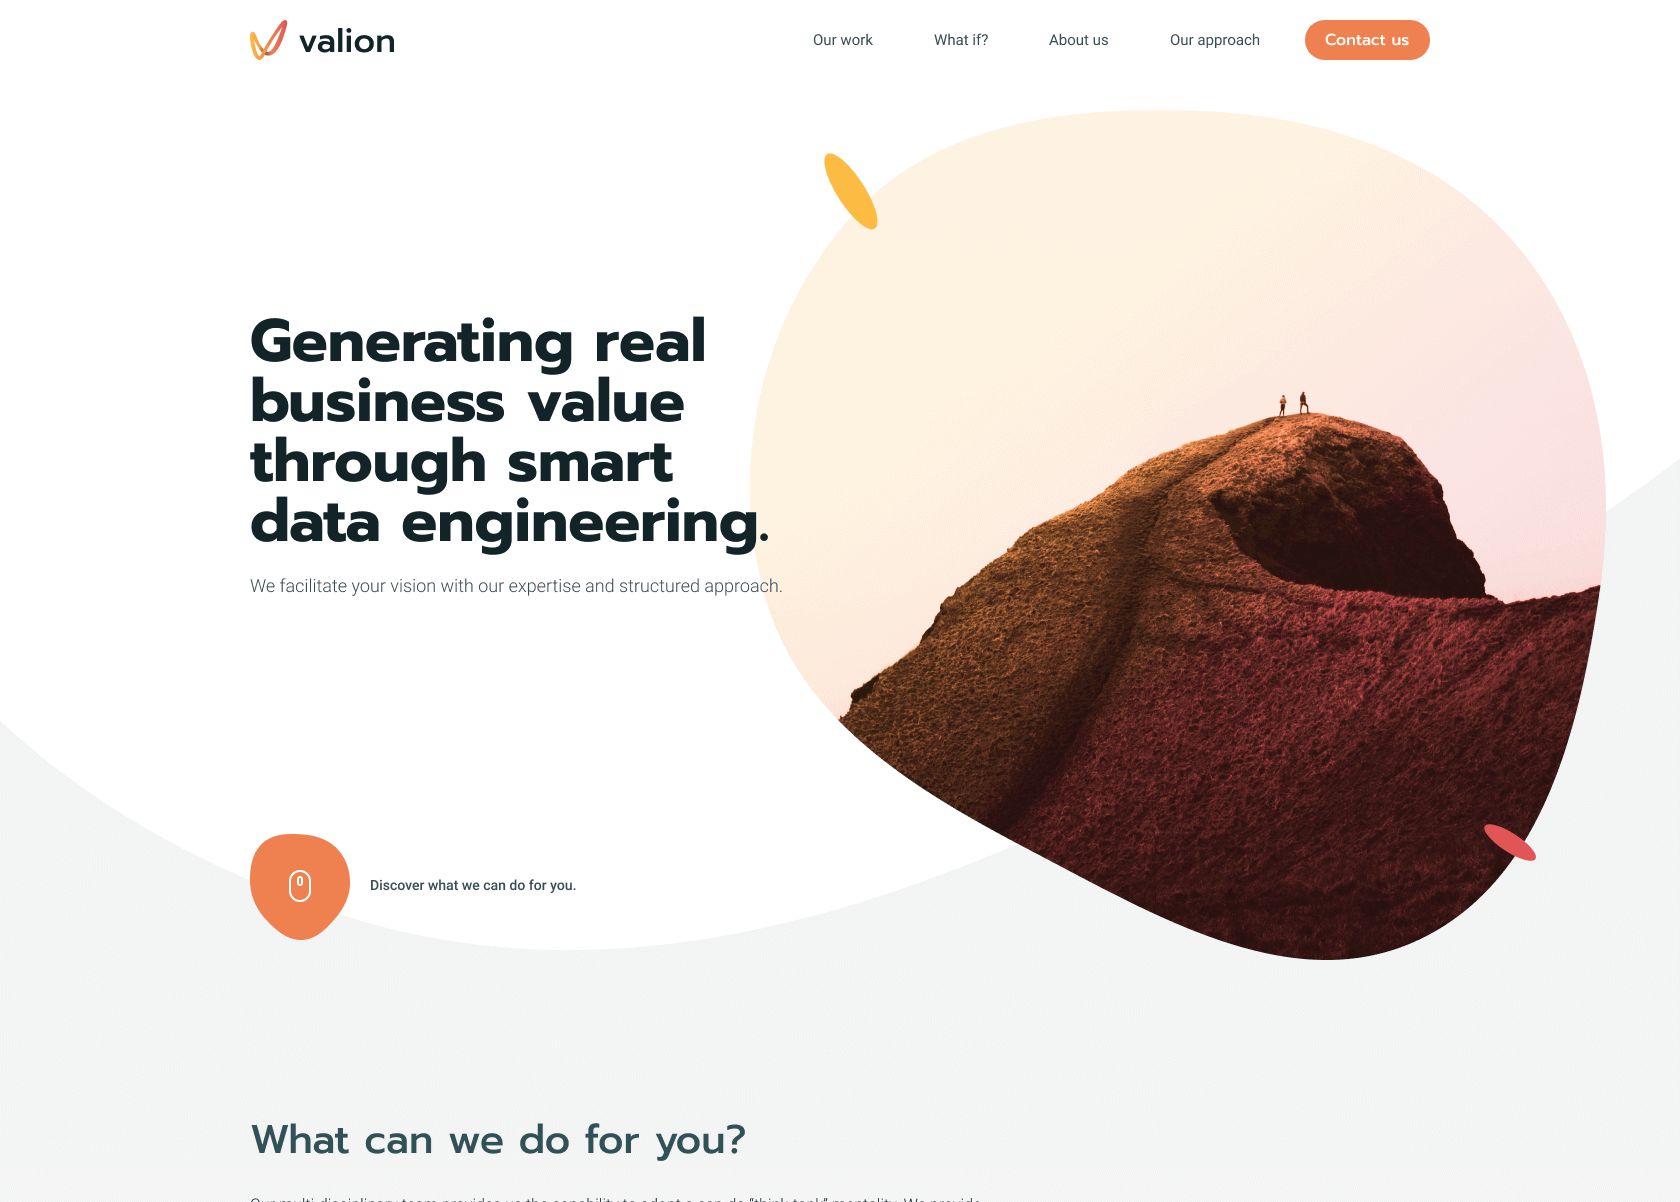 Valion brand new homepage design